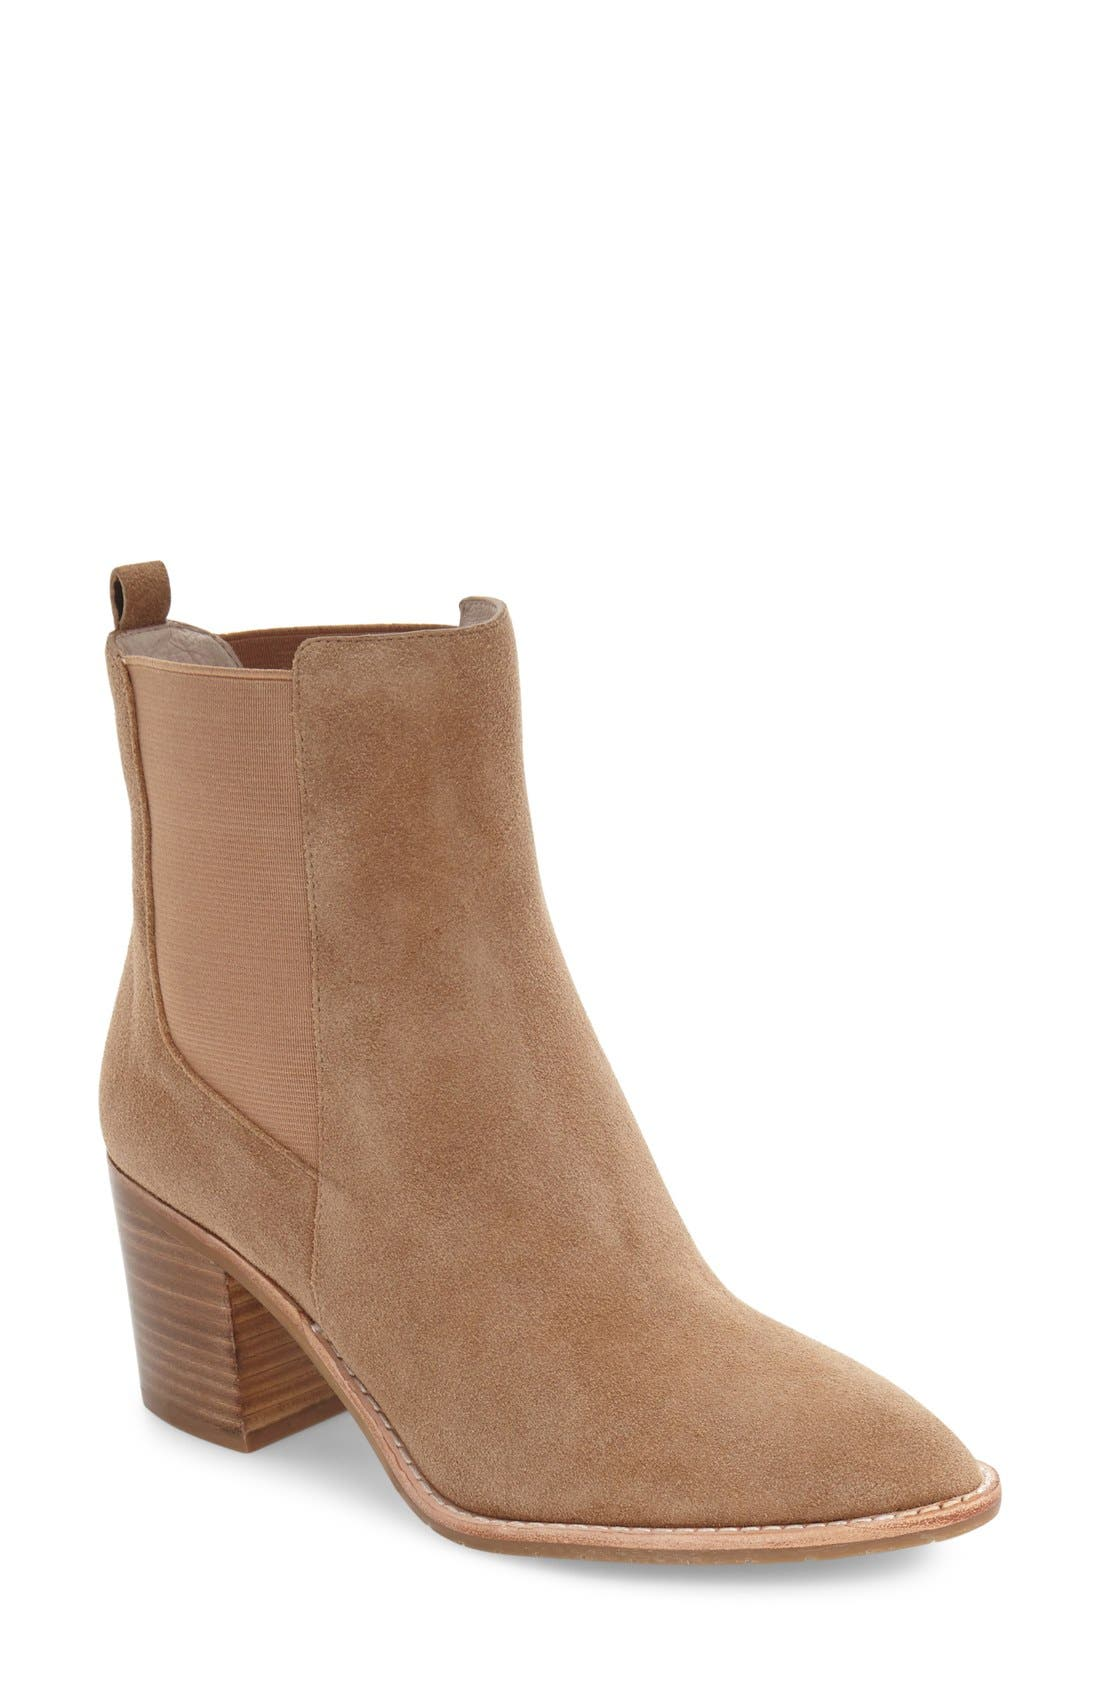 Alternate Image 1 Selected - Kenneth Cole New York Quinley Water Resistant Chelsea Boot (Women)